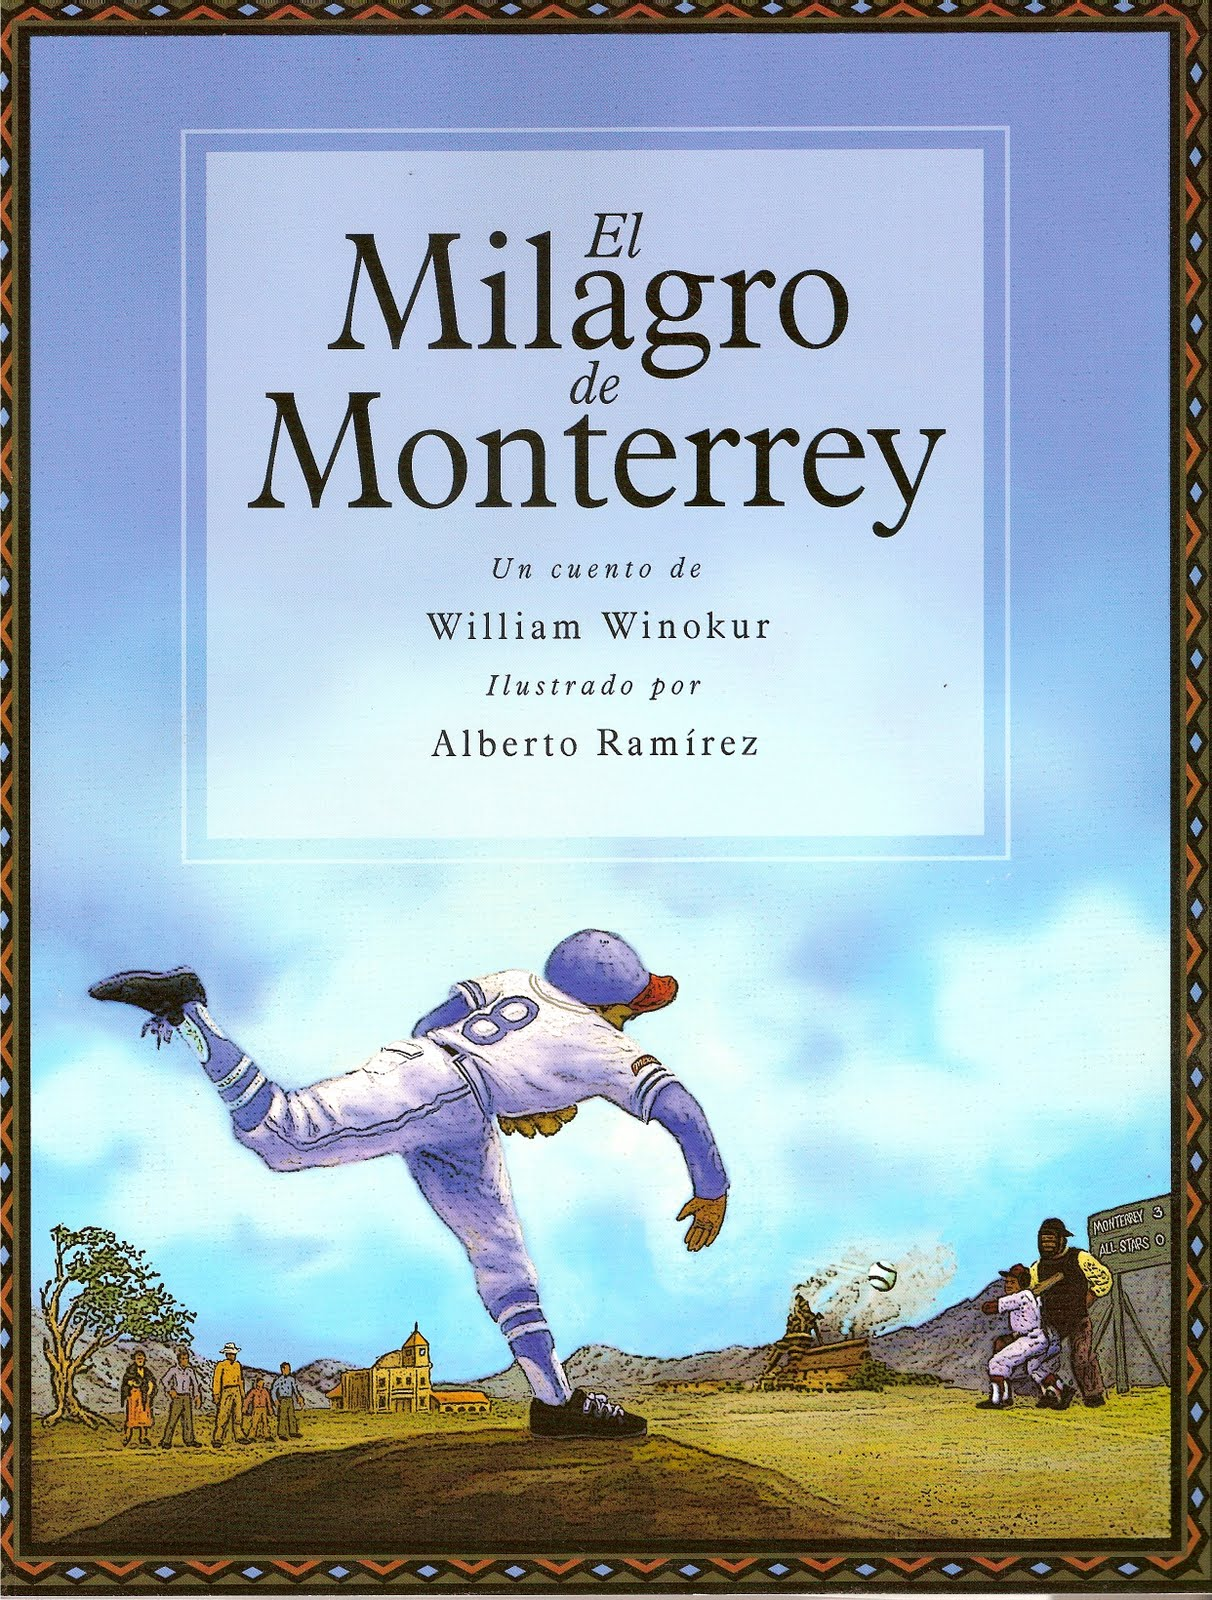 El Milagro de Monterrey